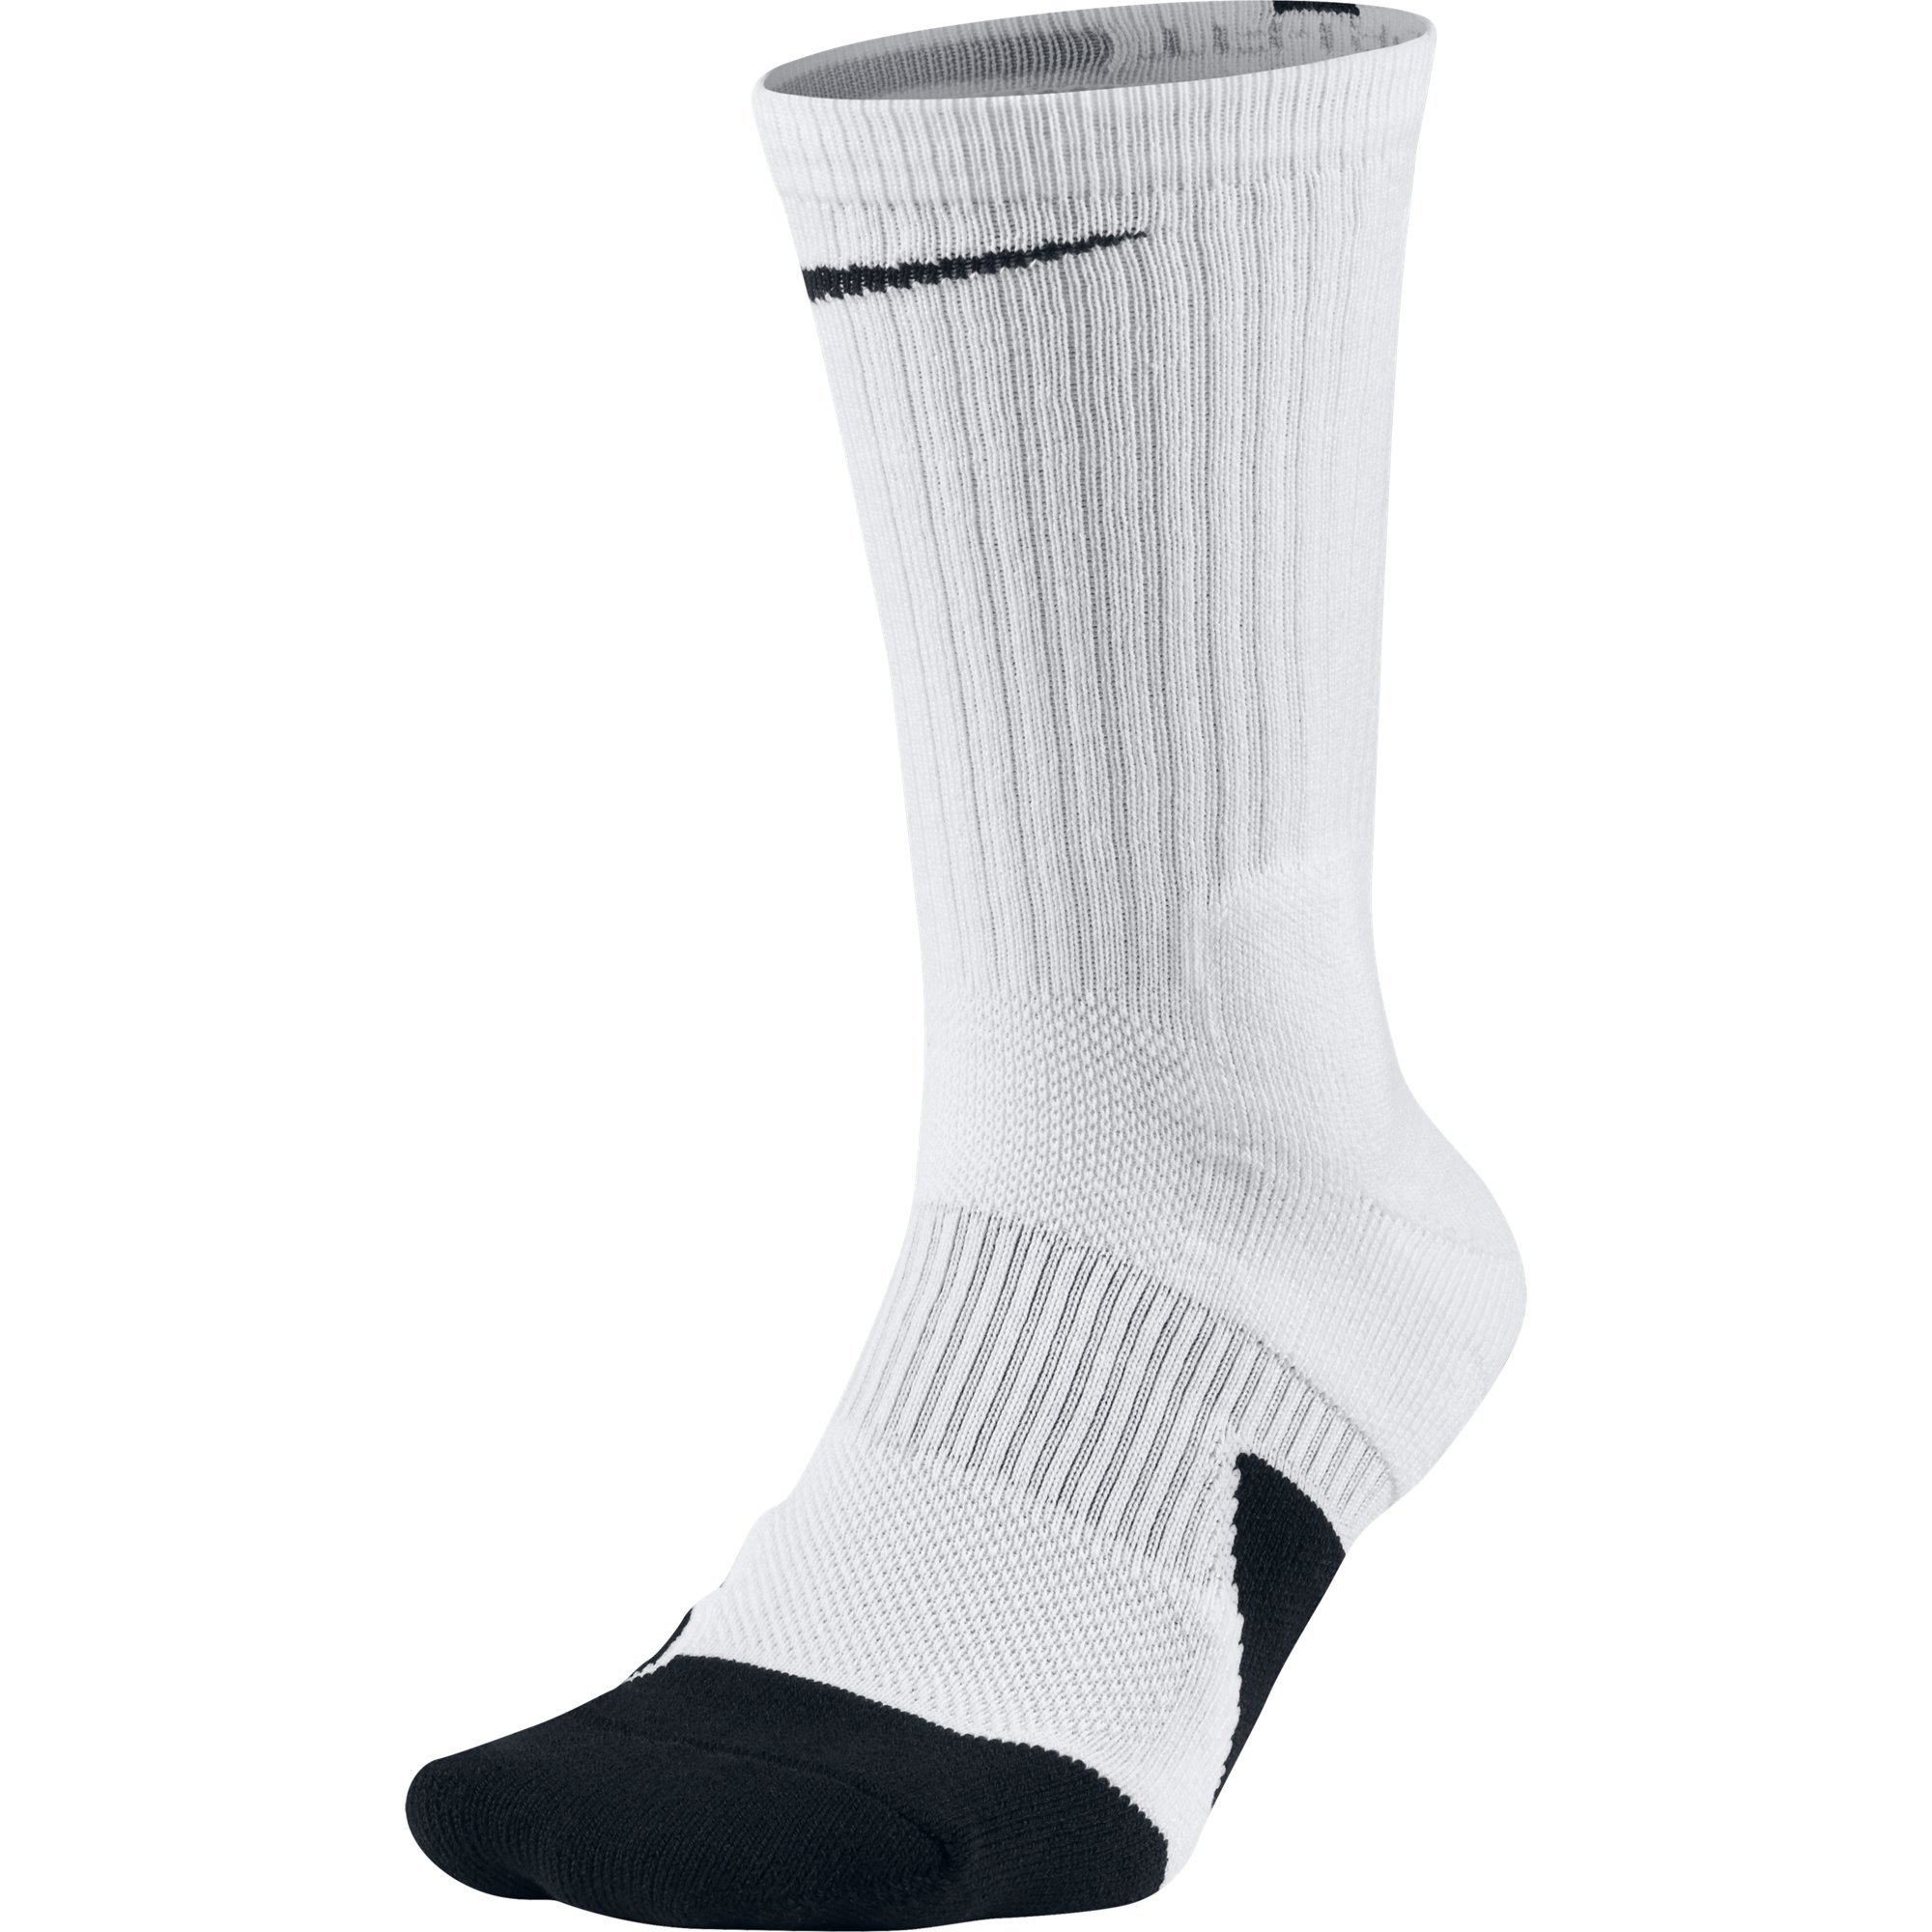 NIKE Unisex Dry Elite 1.5 Crew Basketball Socks (1 Pair), White/Black/Black, Small